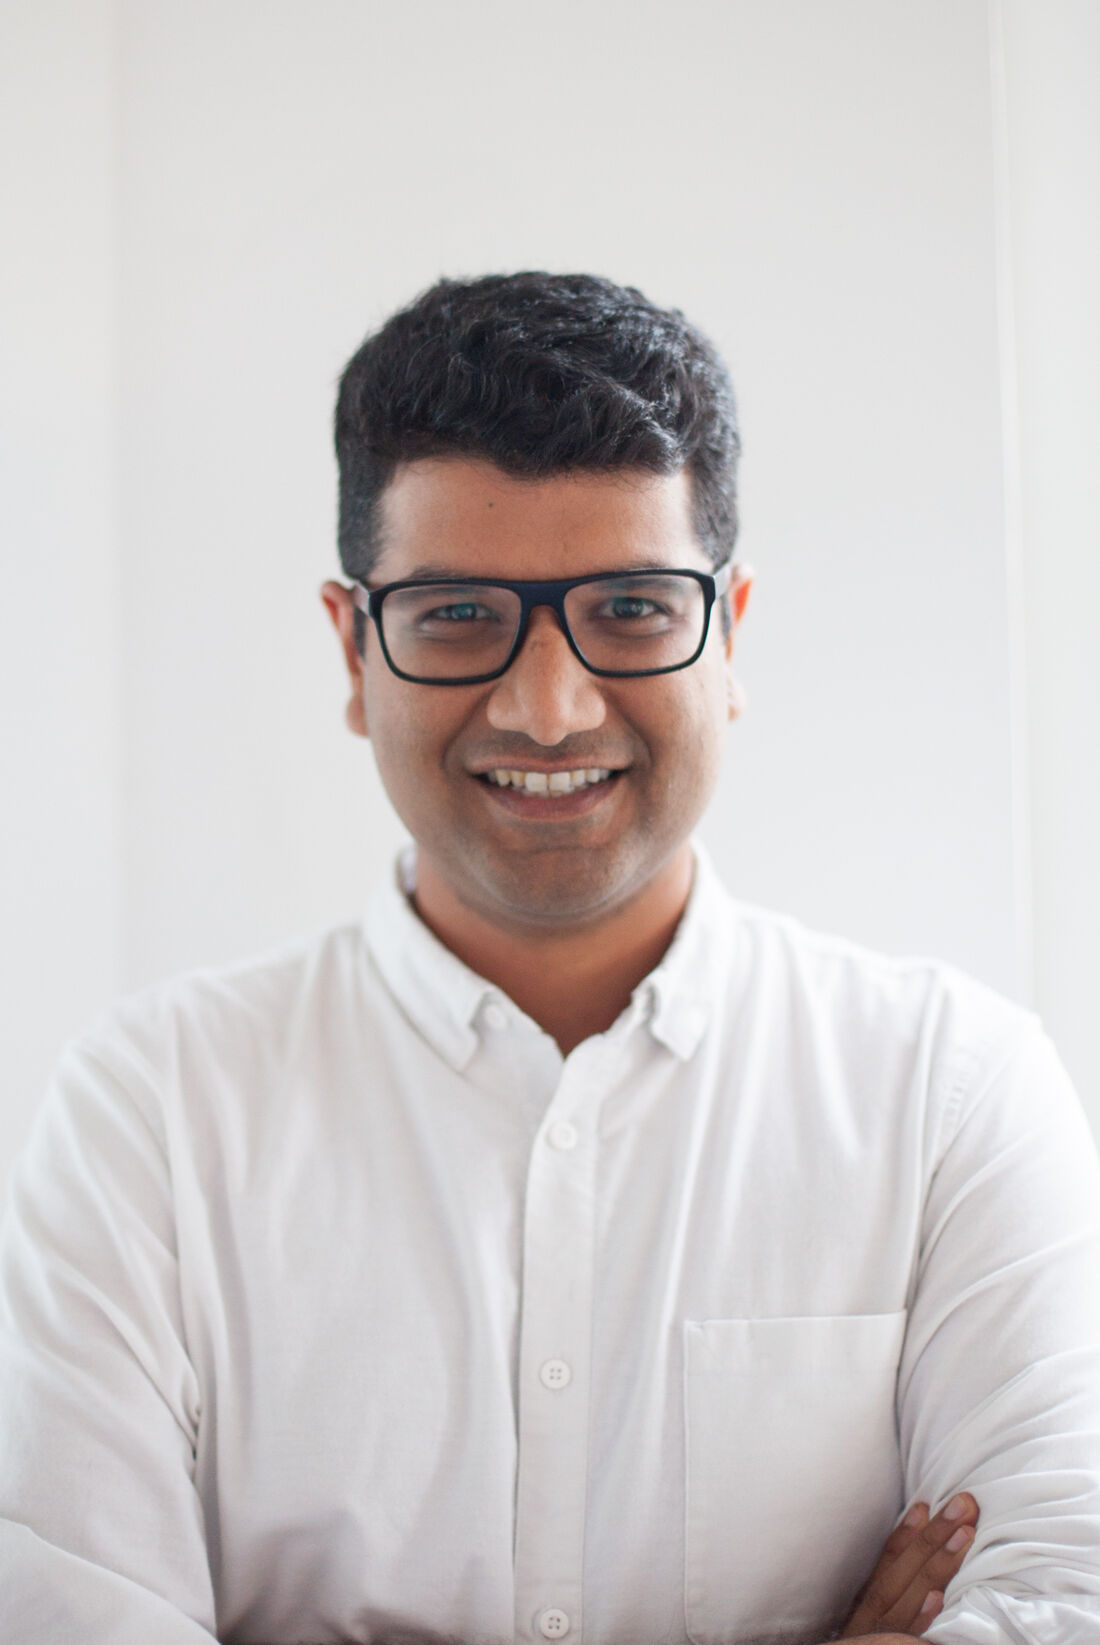 Devang Thakkar, Head of Auctions, joined Artsy in 2015 after 10 years at Microsoft.